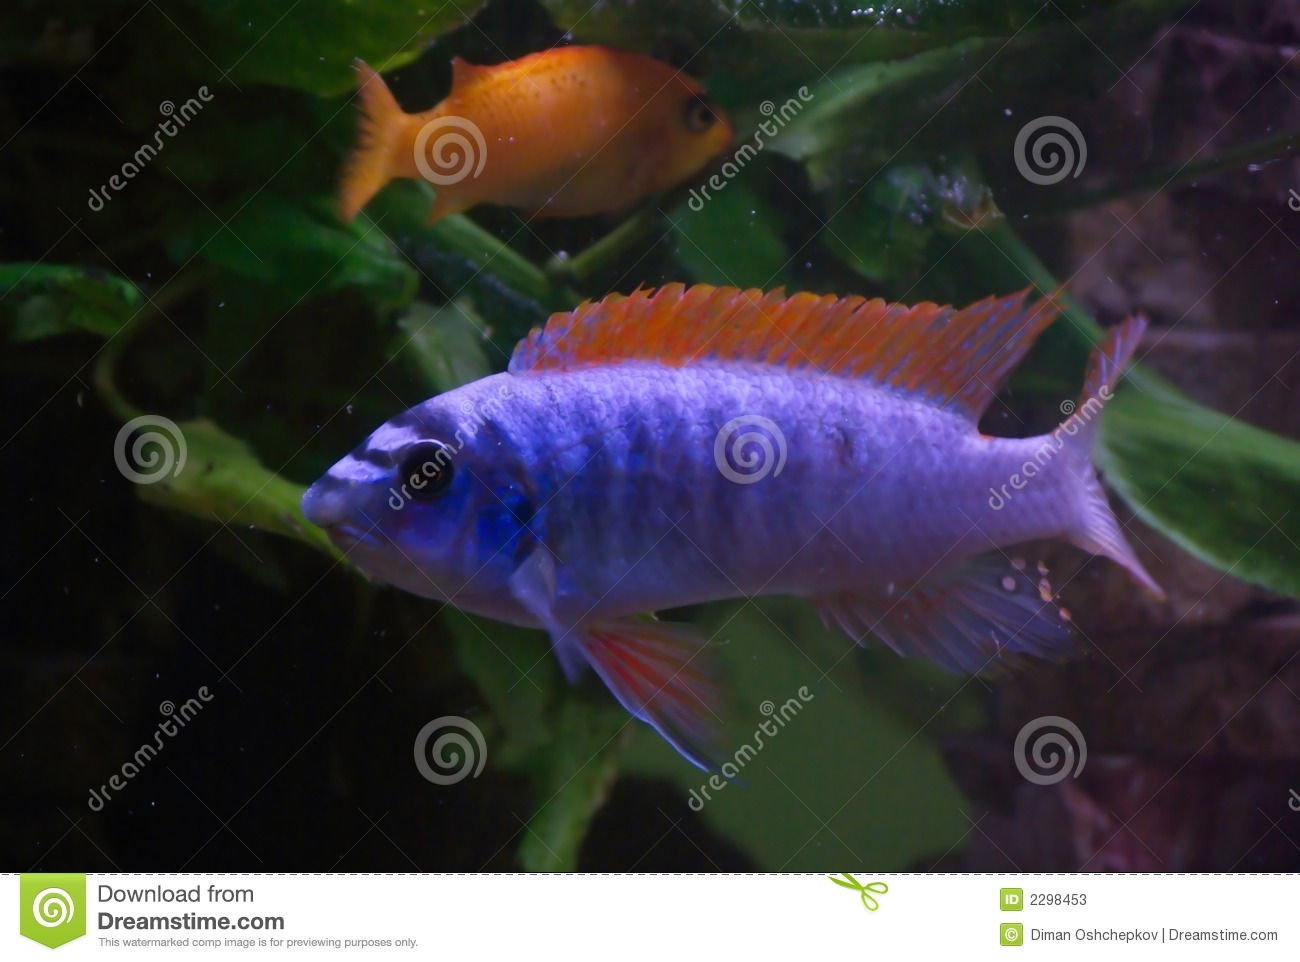 Blue fish red fins stock image image of eyes bright for Blue fin fish